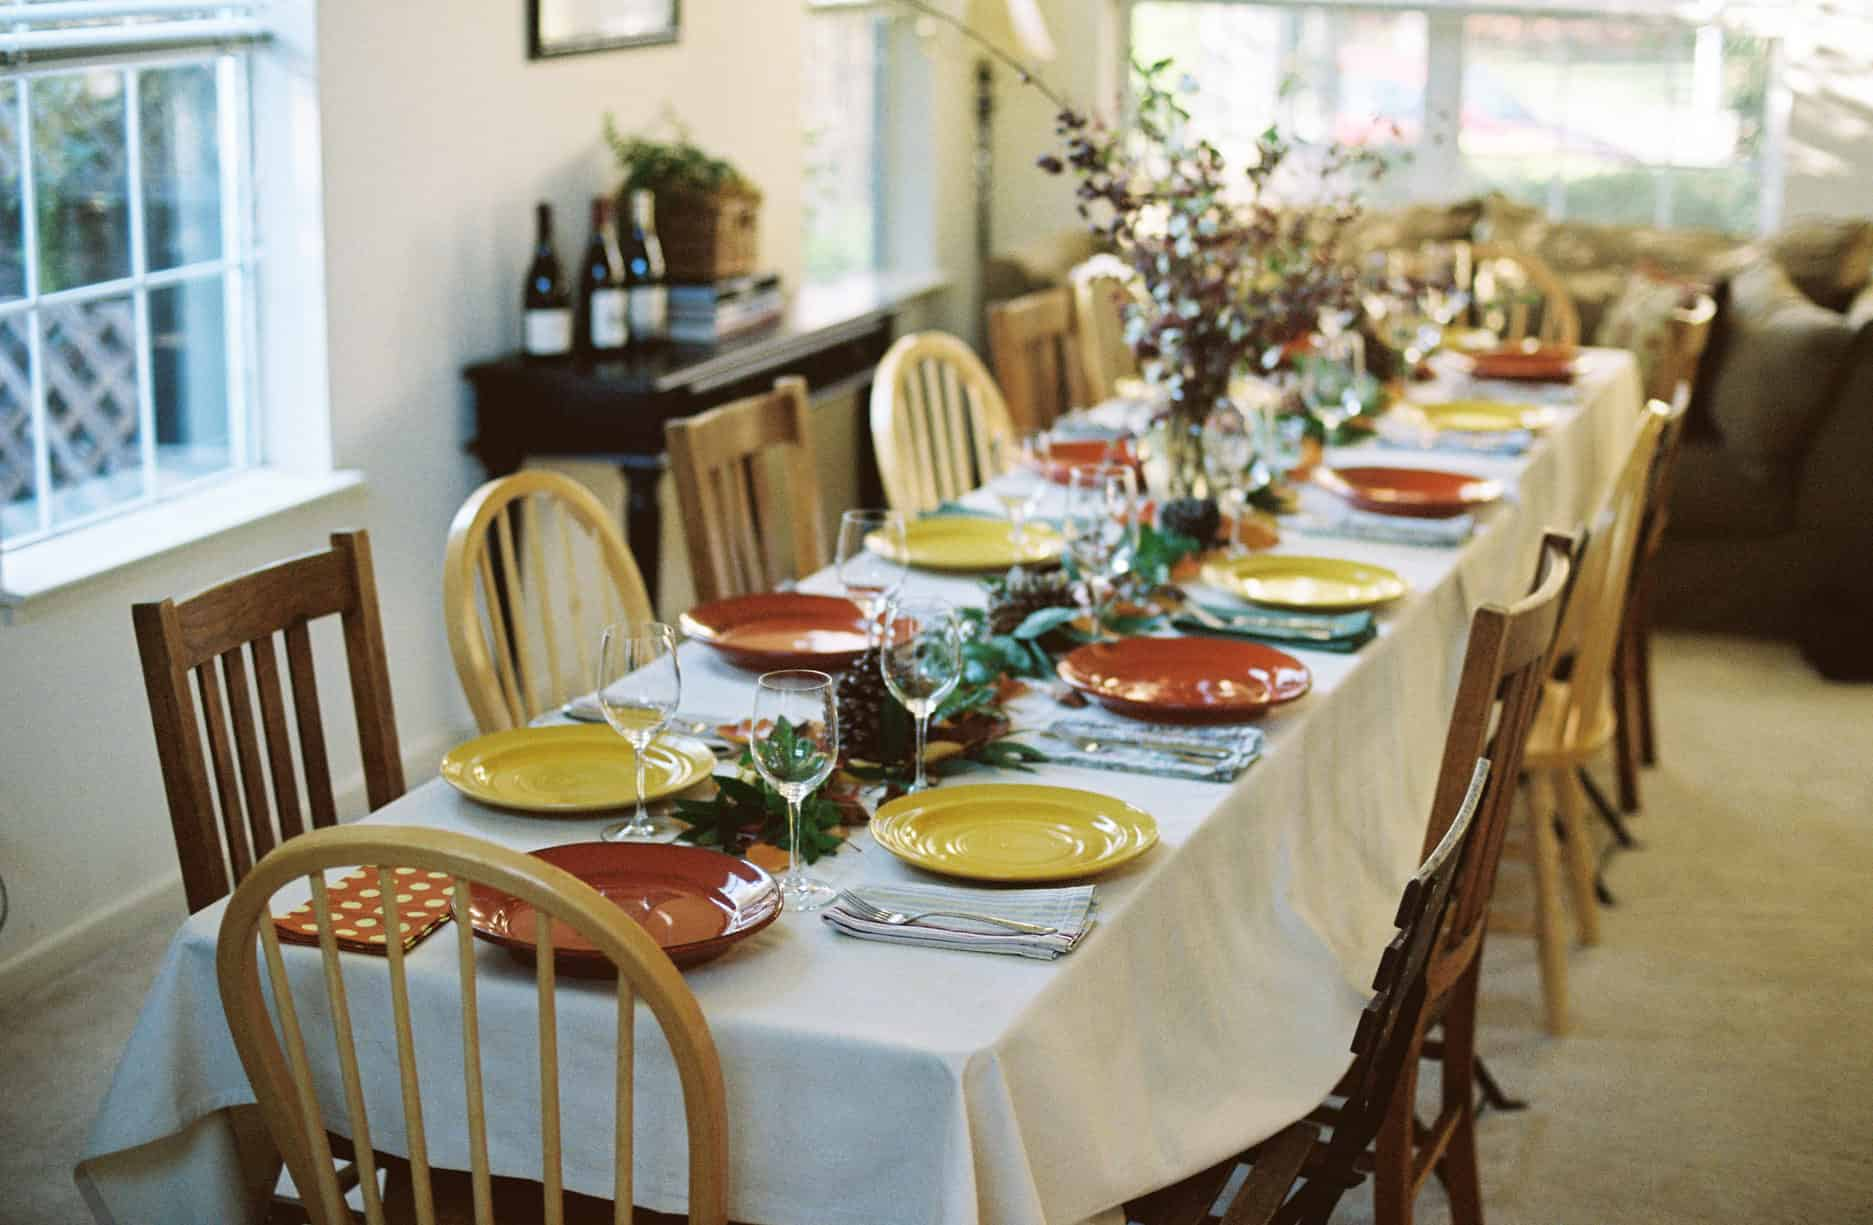 Table Runner Vs Tablecloth Vs Bare Table Which Is Best